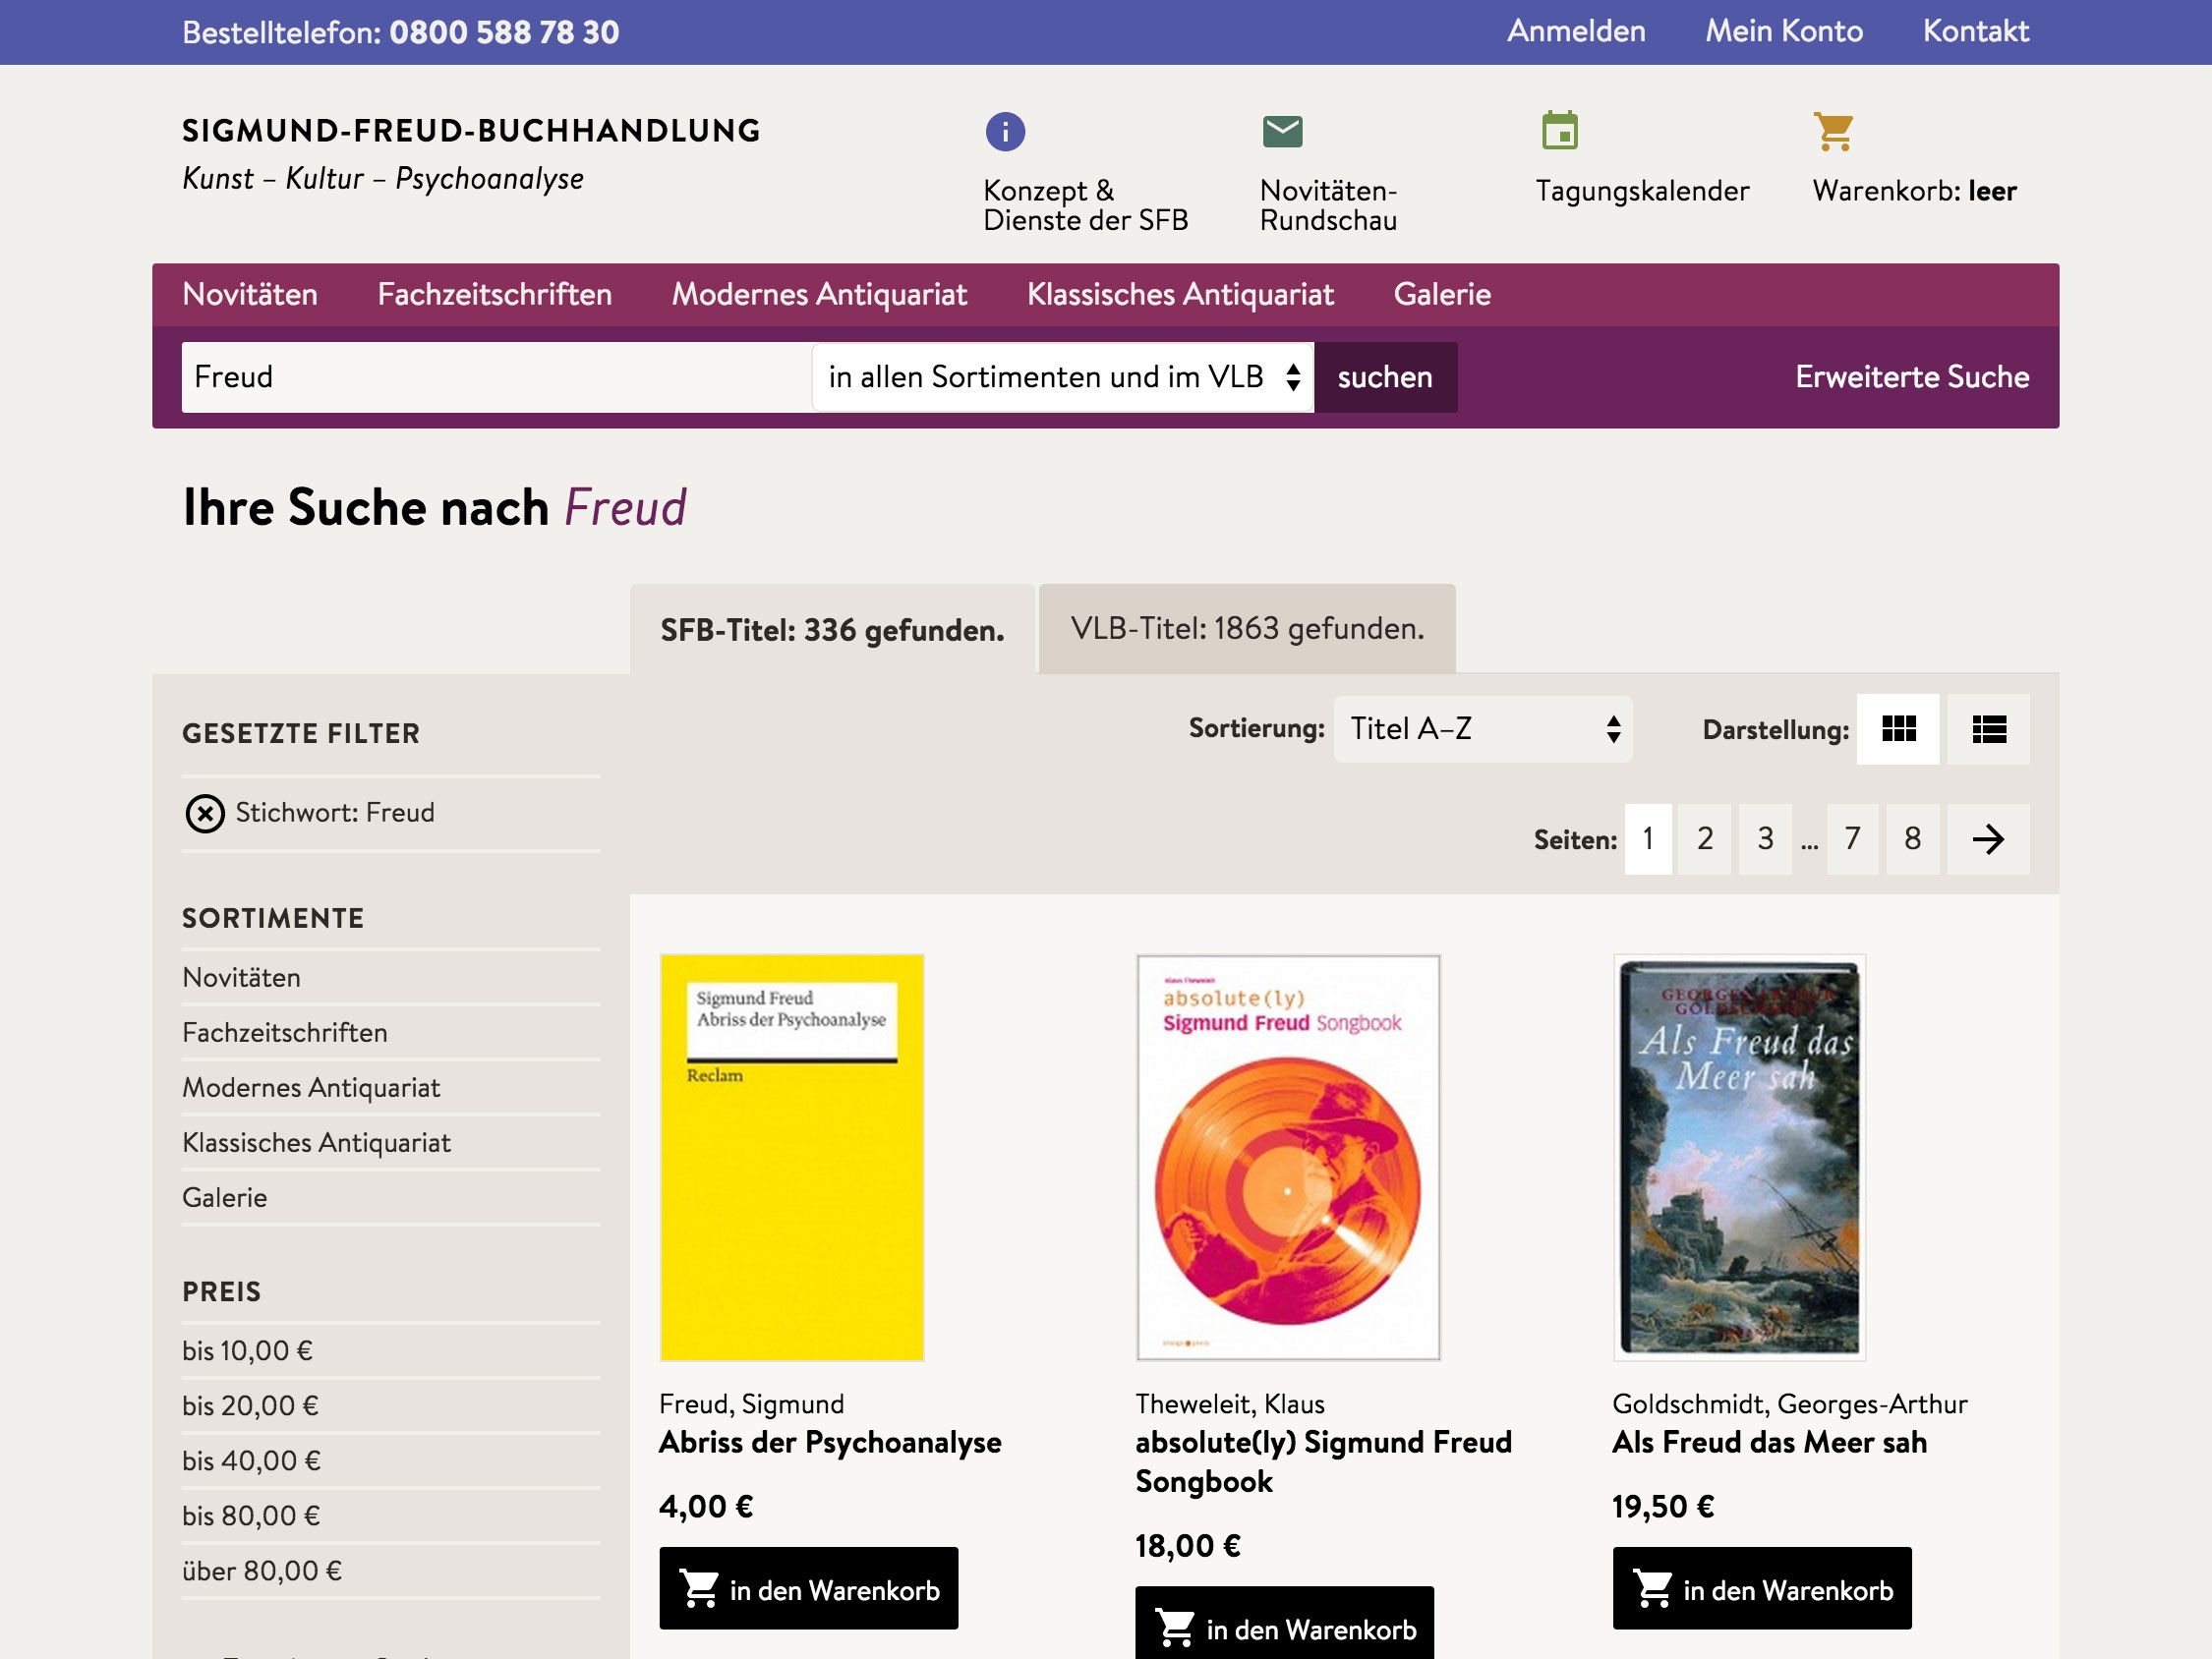 Website Sigmund-Freud-Buchhandlung